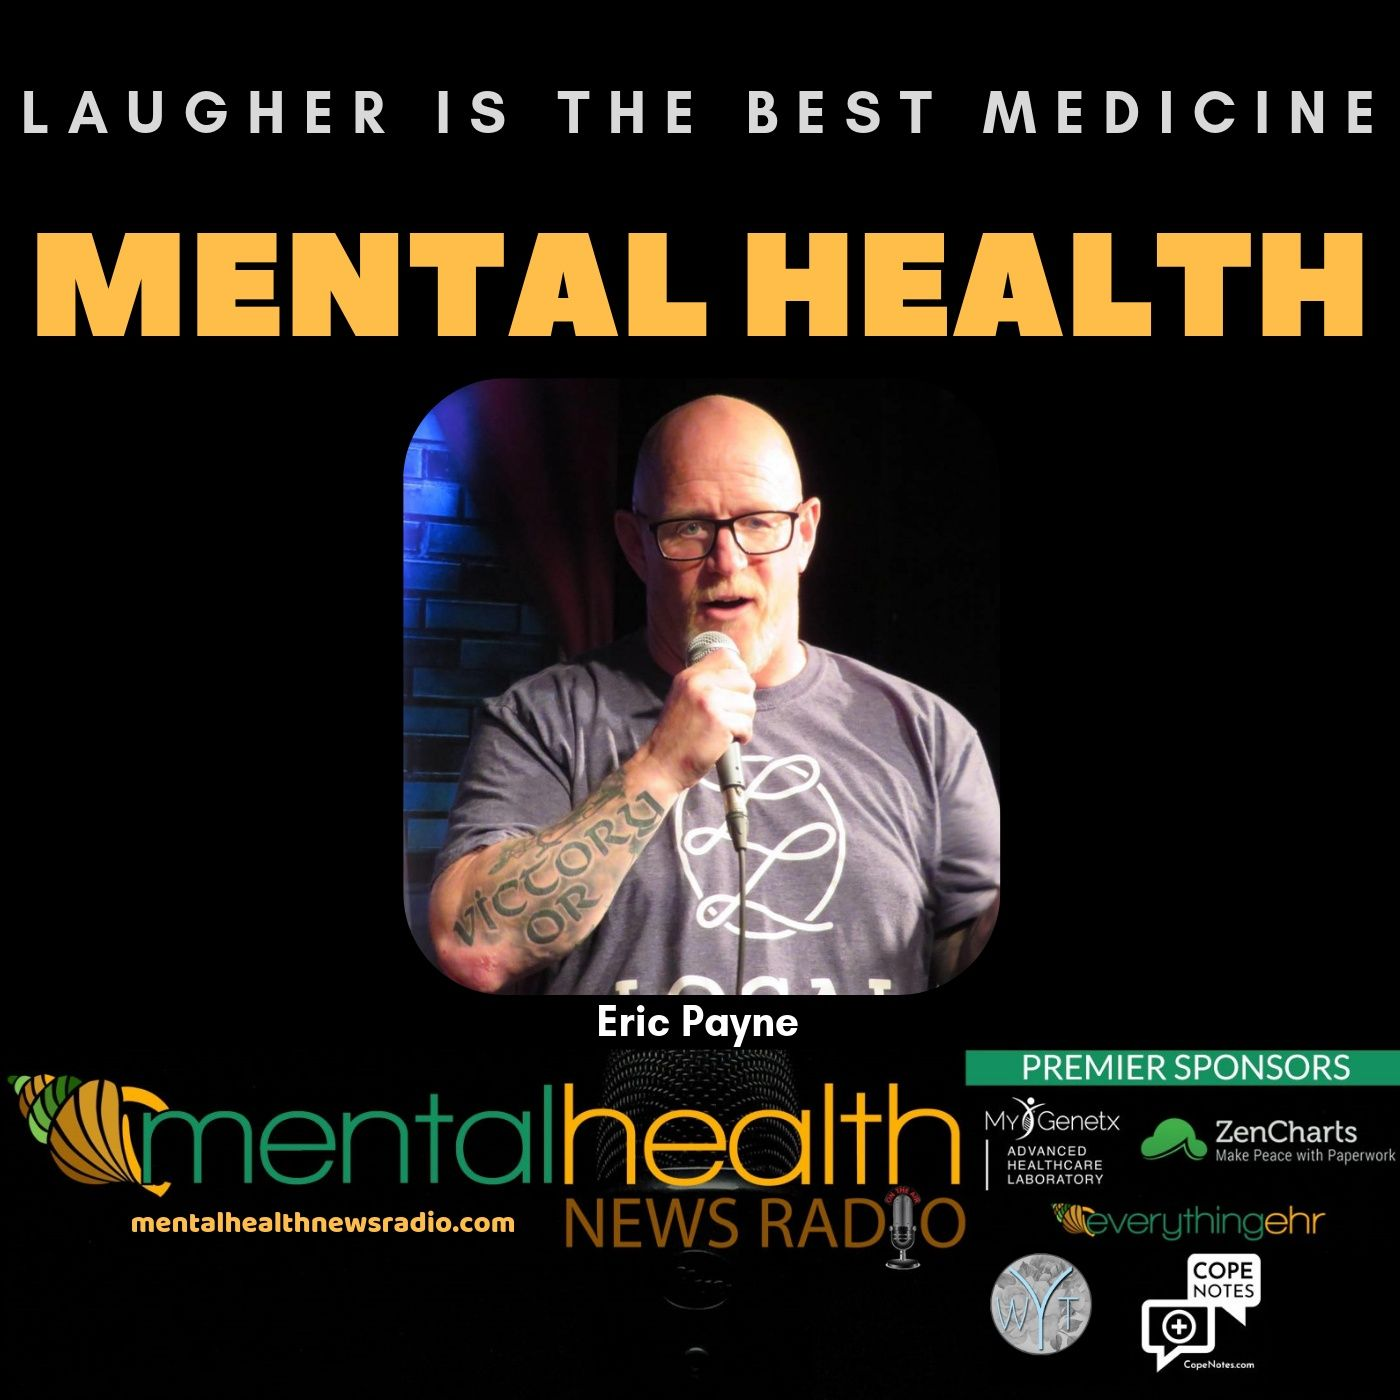 Mental Health News Radio - Laughter is the BEST Medicine for Mental Health